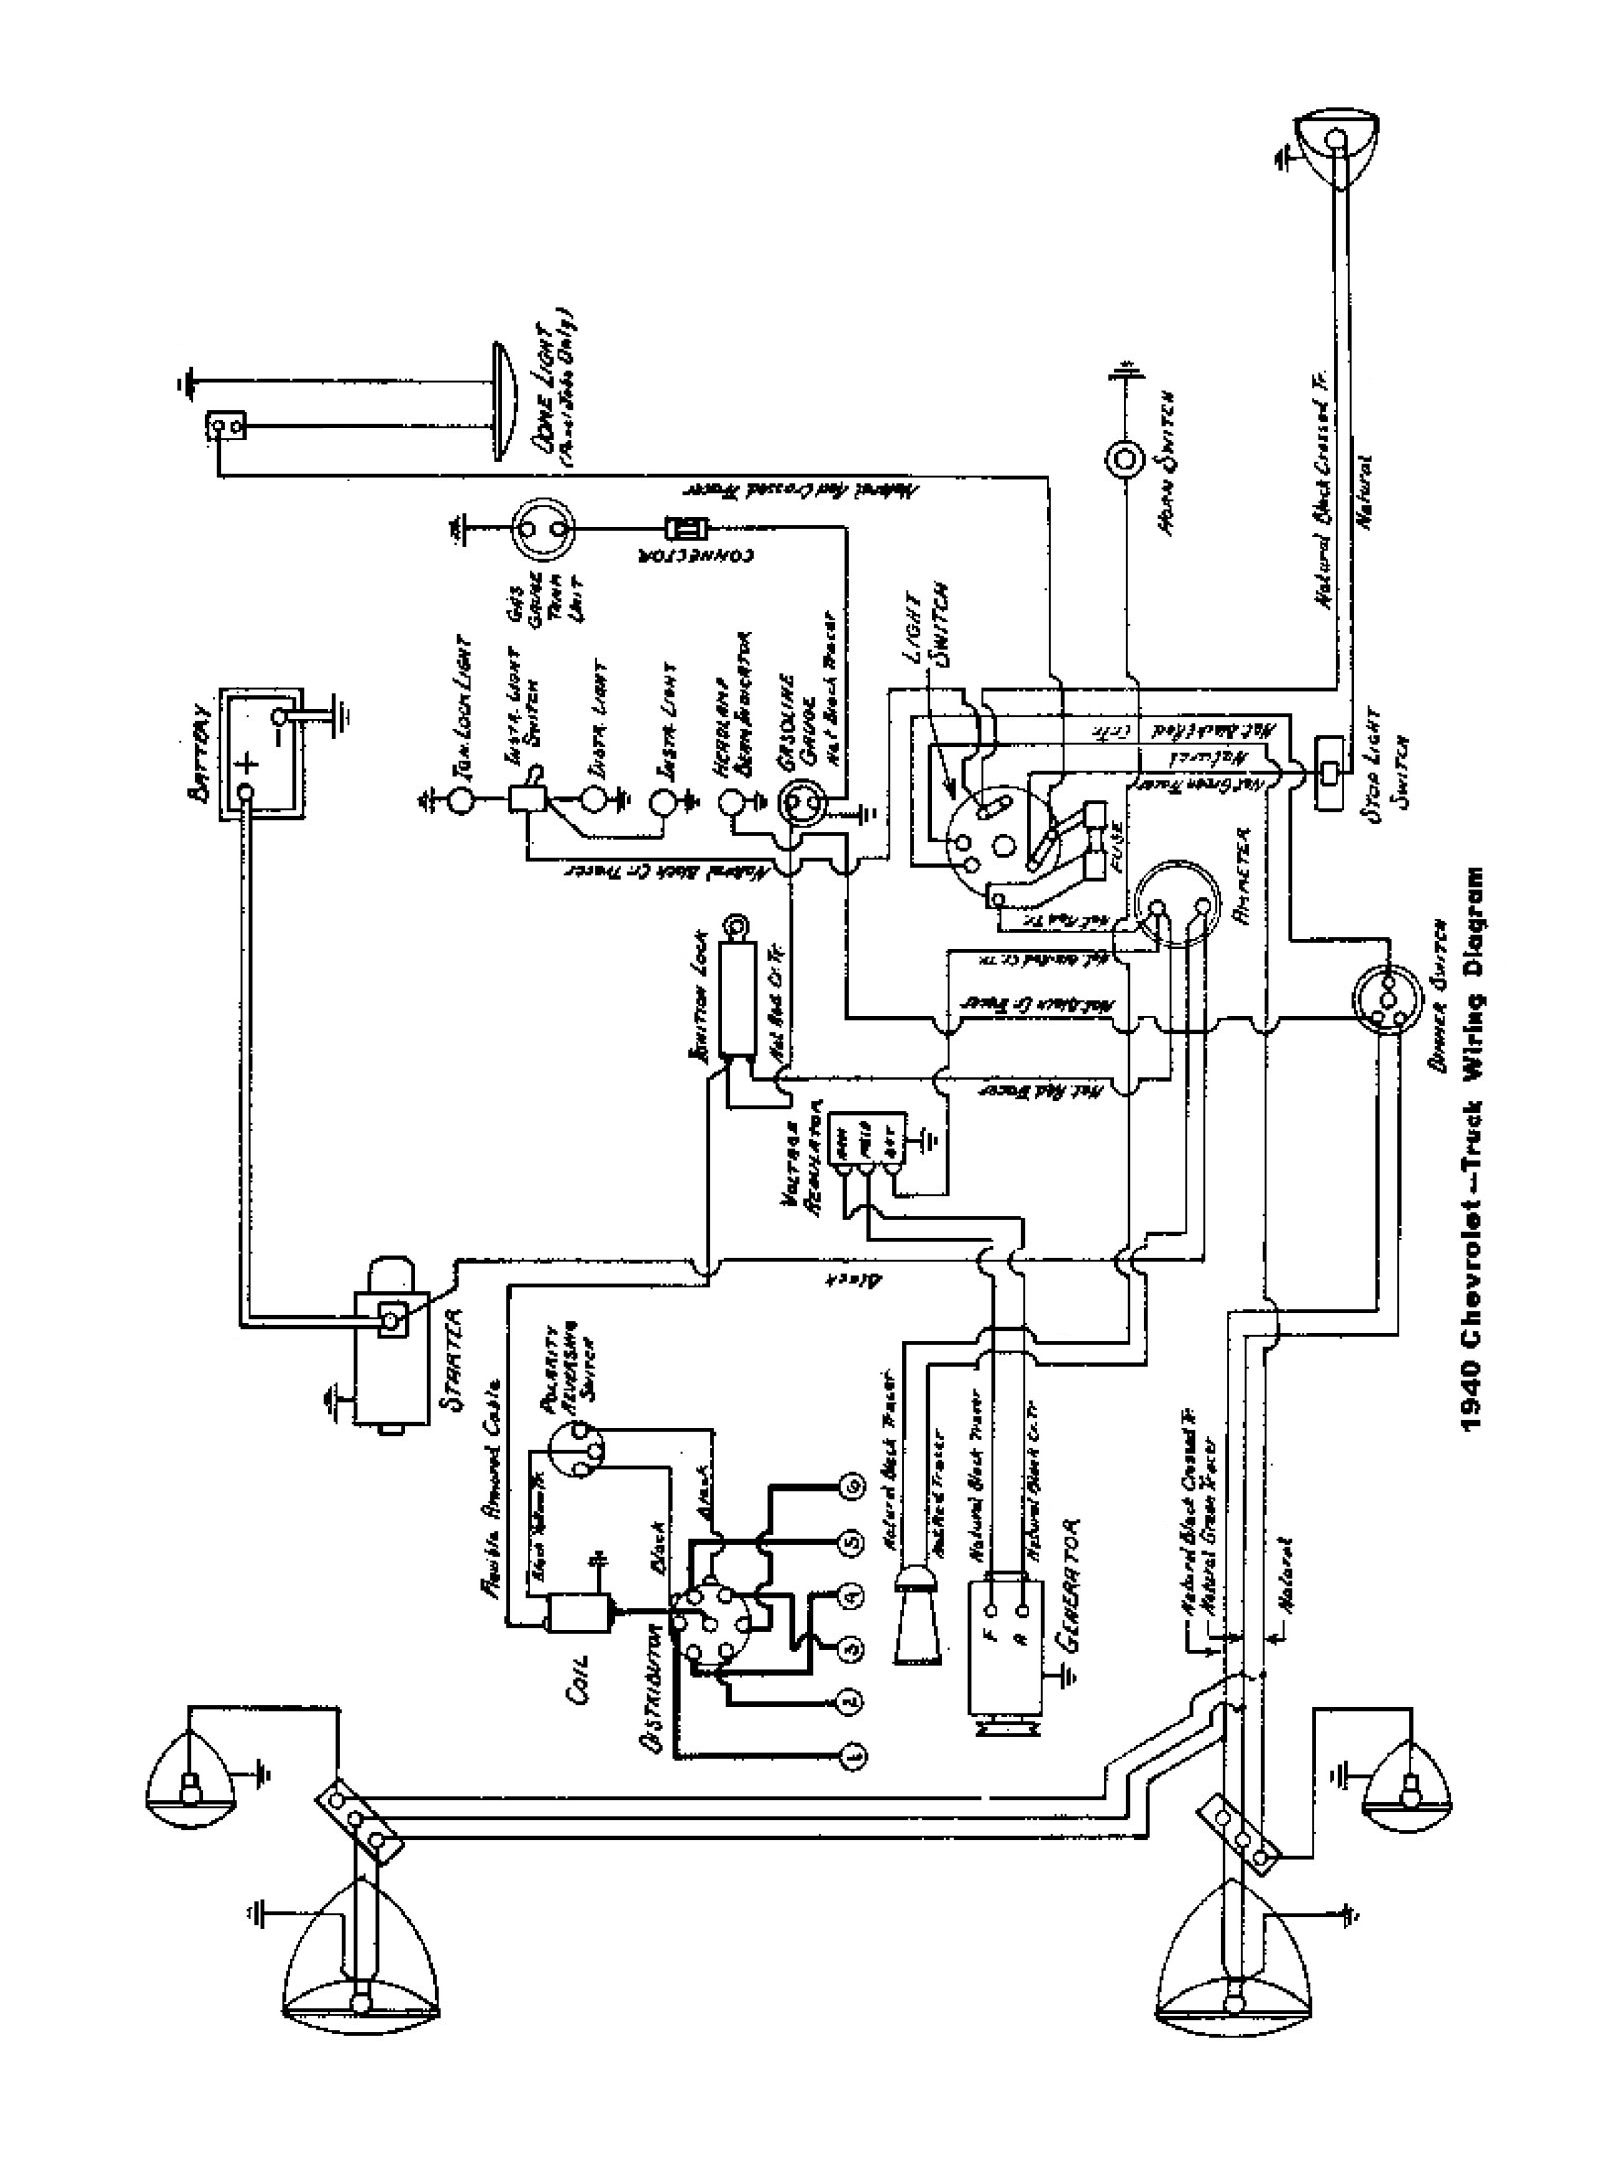 1956 Chevy Radio Wiring Diagram Opinions About Wiring Diagram \u2022 1936 Chevy  Wiring Diagram 1956 Chevy Wiring Diagram